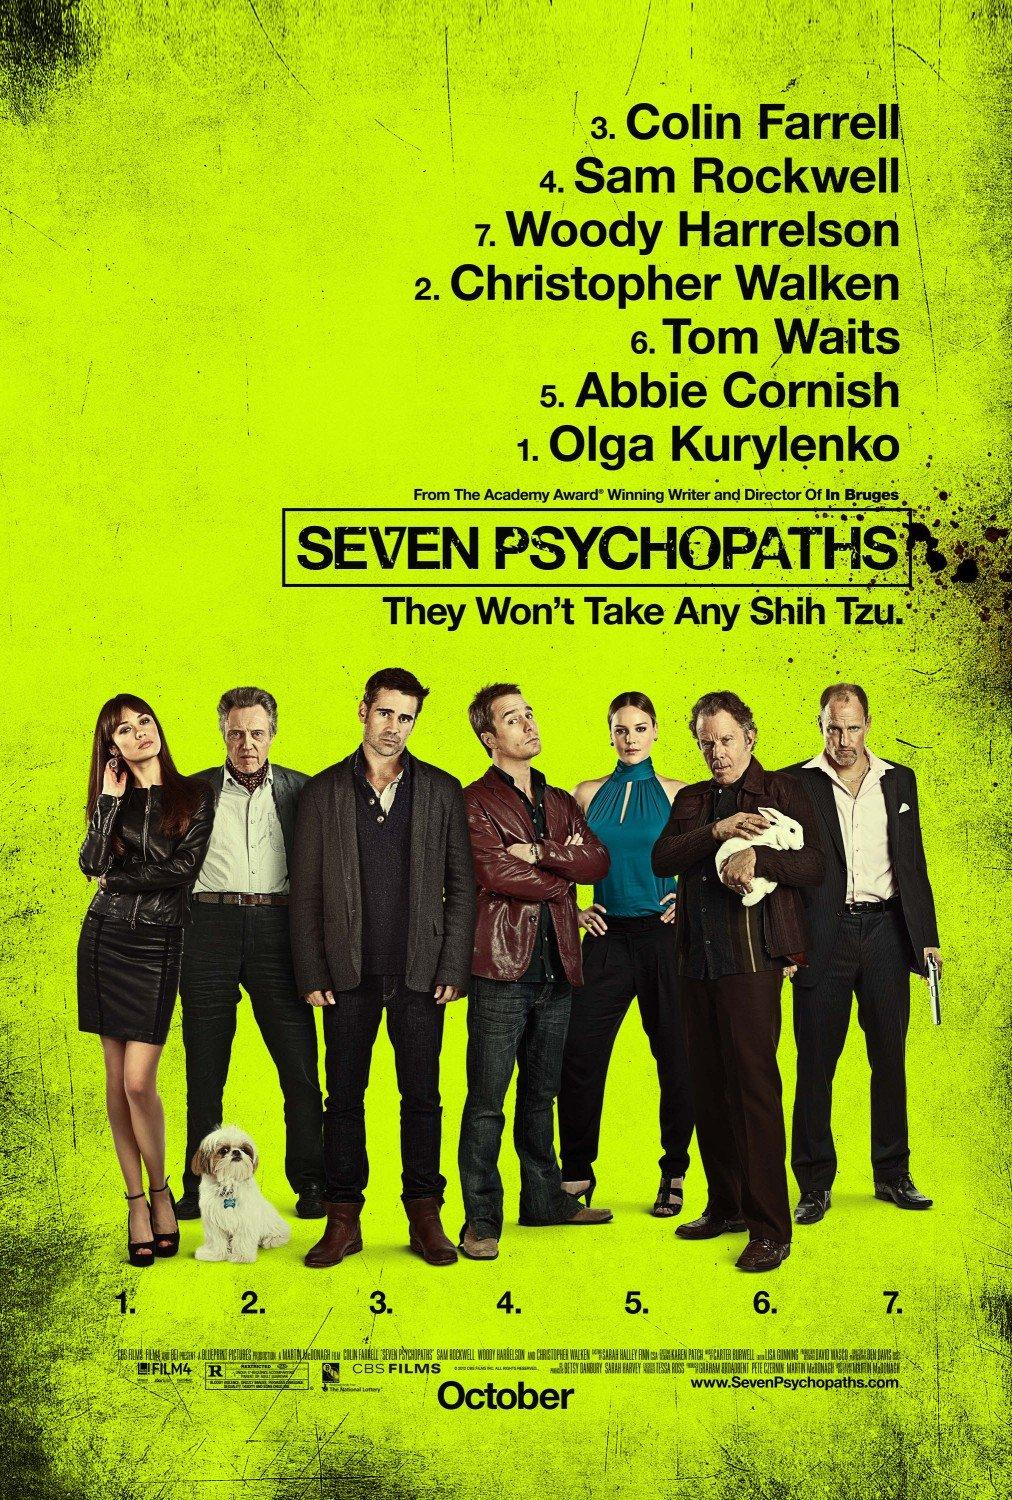 Movie Poster Inspiration: Seven Psychopaths | Daily Inspiration